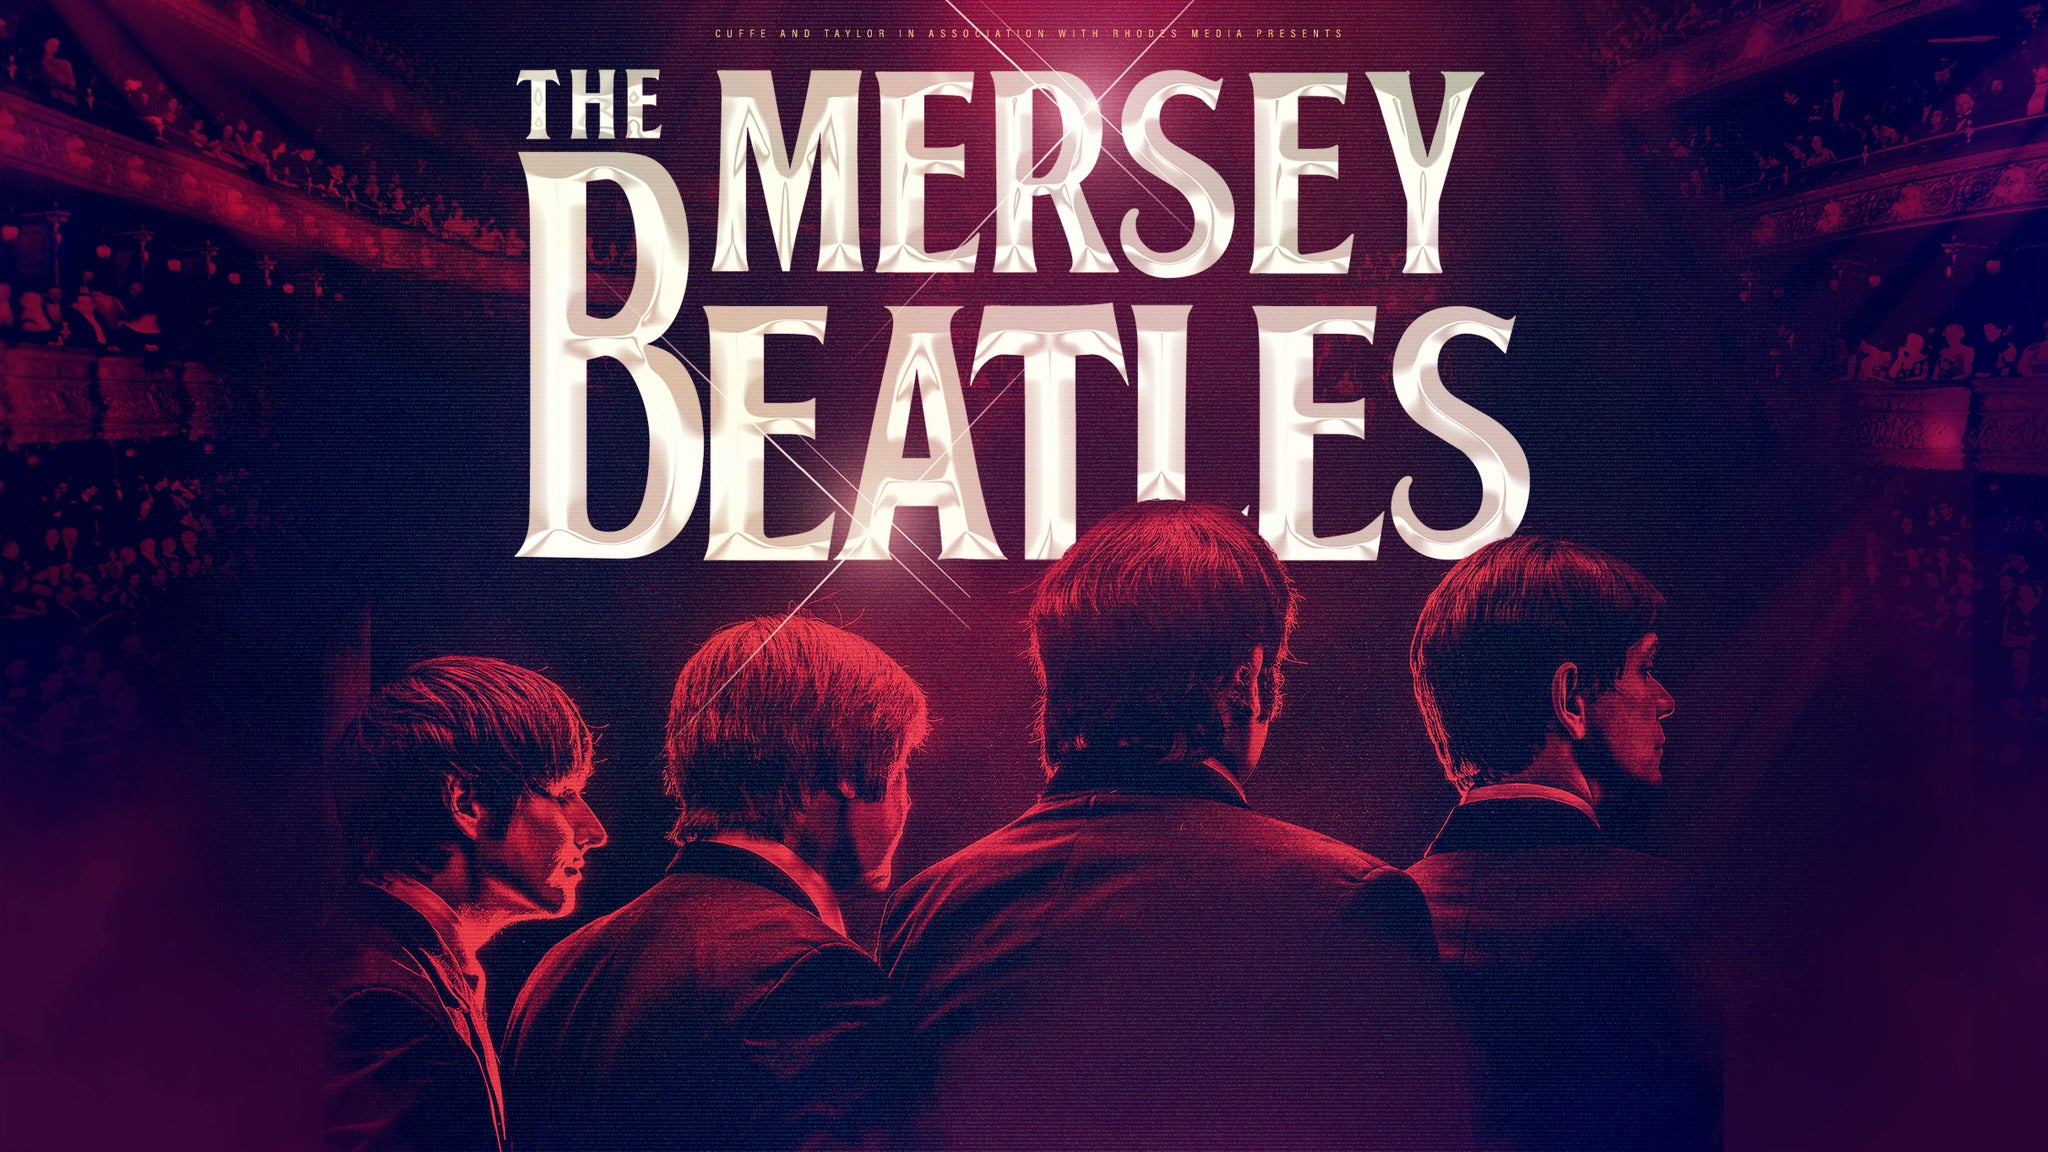 The Mersey Beatles Seating Plan Liverpool Echo Arena